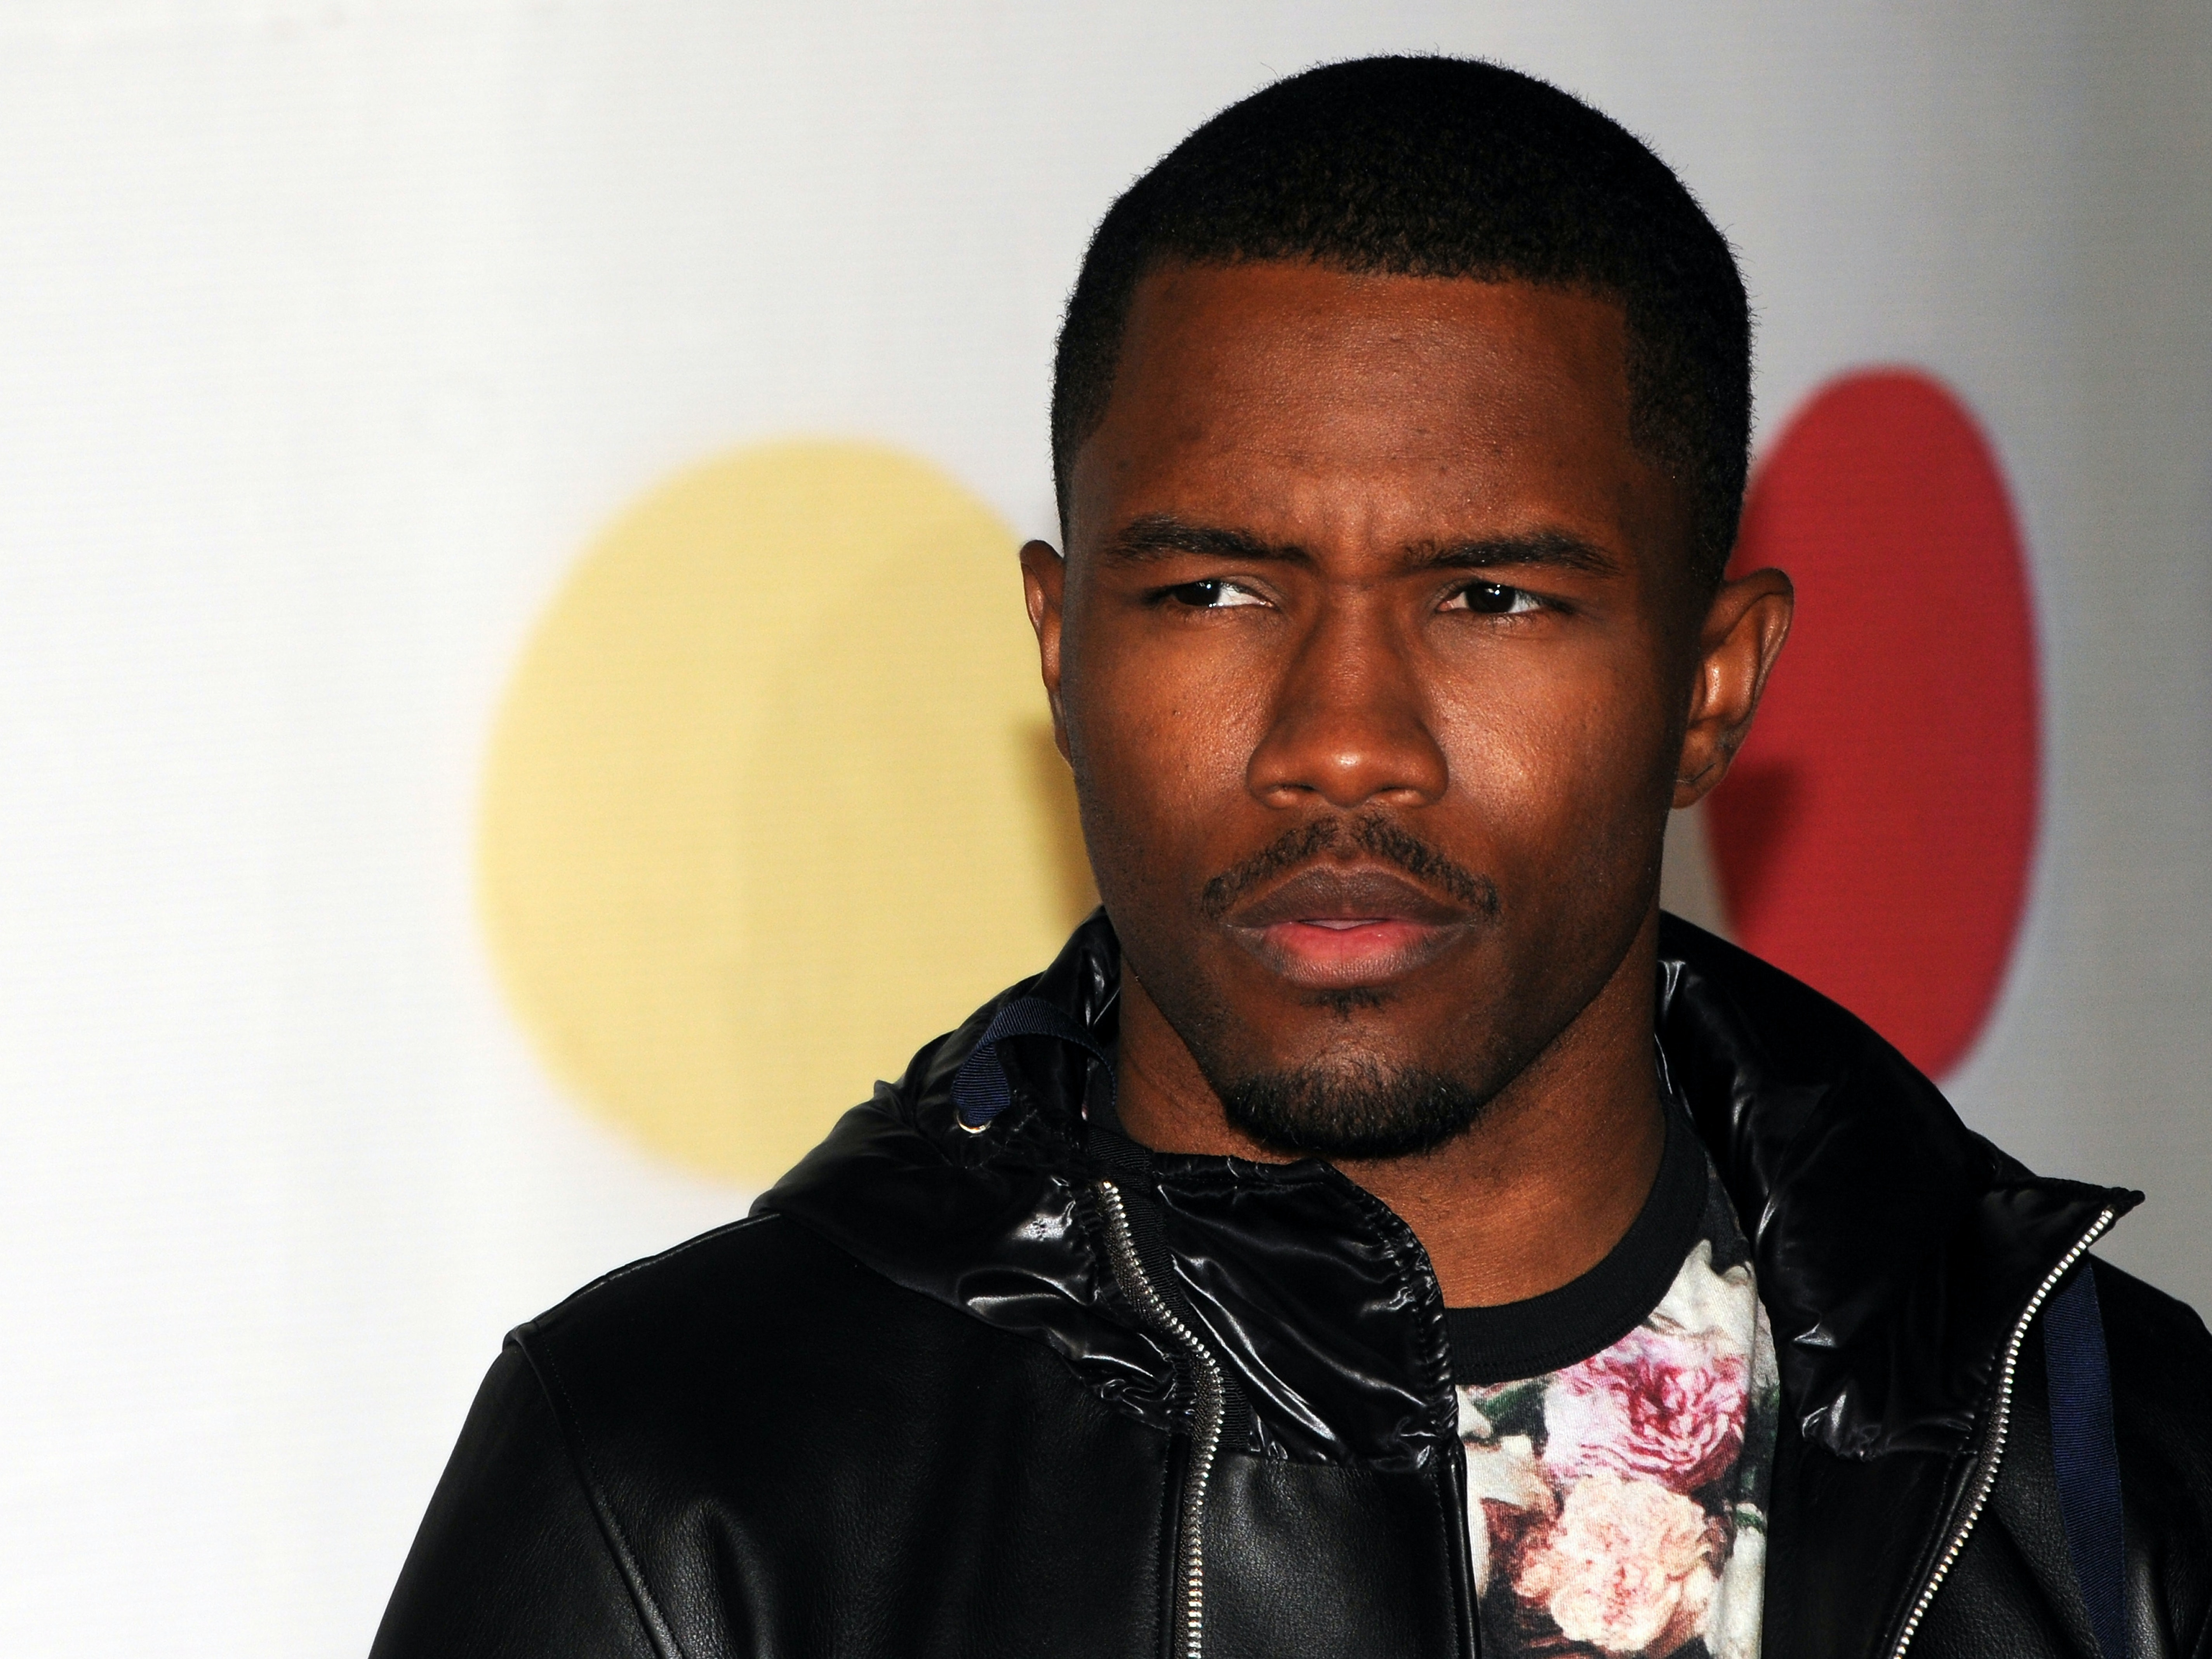 LONDON, ENGLAND - FEBRUARY 20:  Frank Ocean attends the Brit Awards 2013 at the 02 Arena on February 20, 2013 in London, England.  (Photo by Eamonn McCormack/Getty Images)